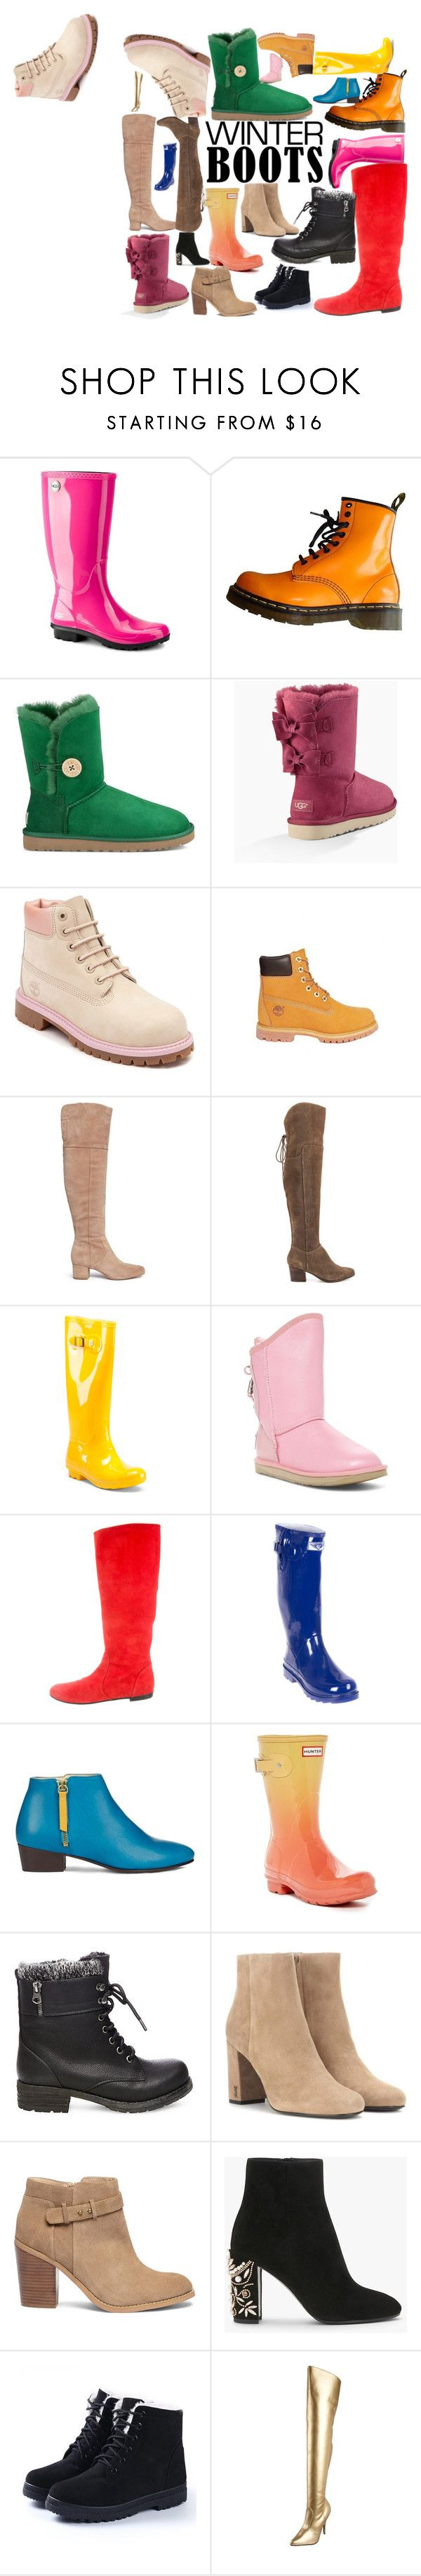 1000 Ideas About Timberland Field Boot On Pinterest